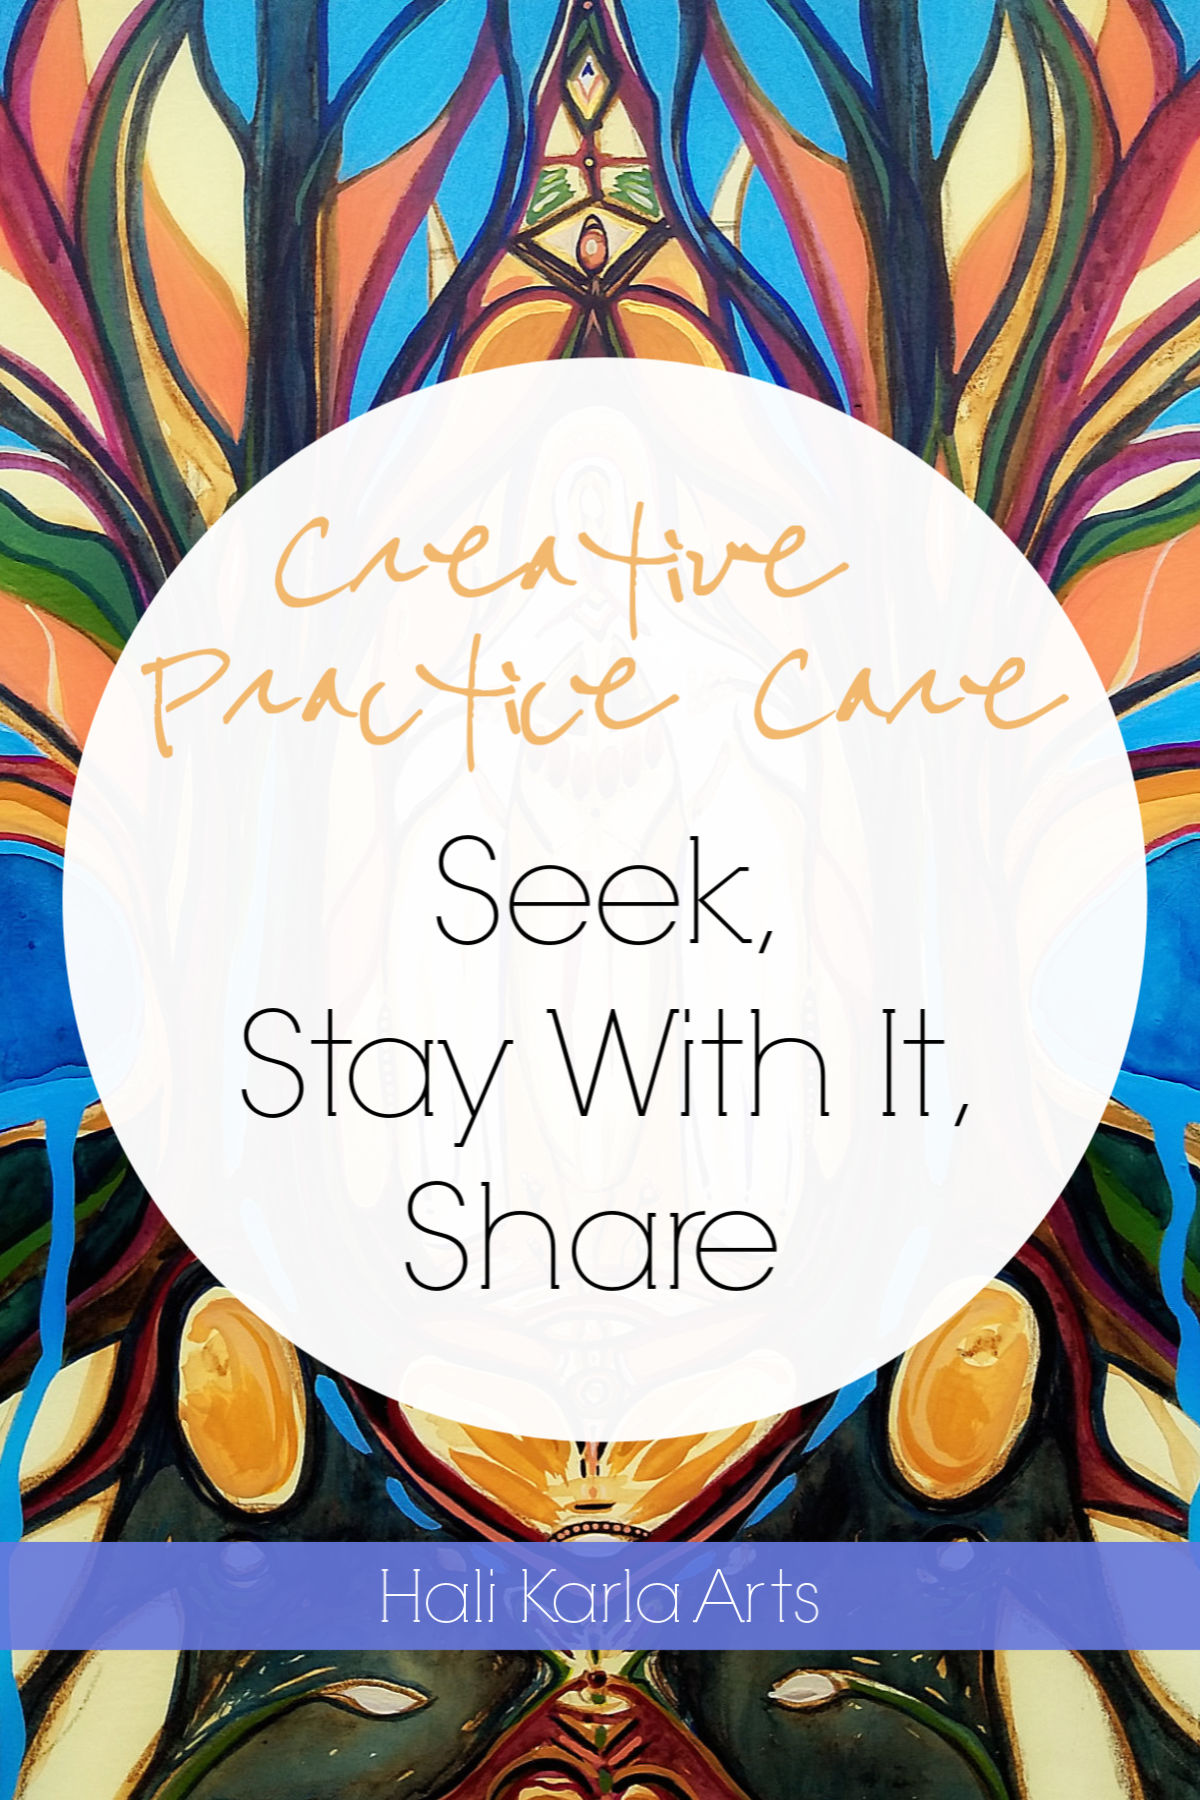 Creative Practice Care & Encouragement | Hali Karla Arts